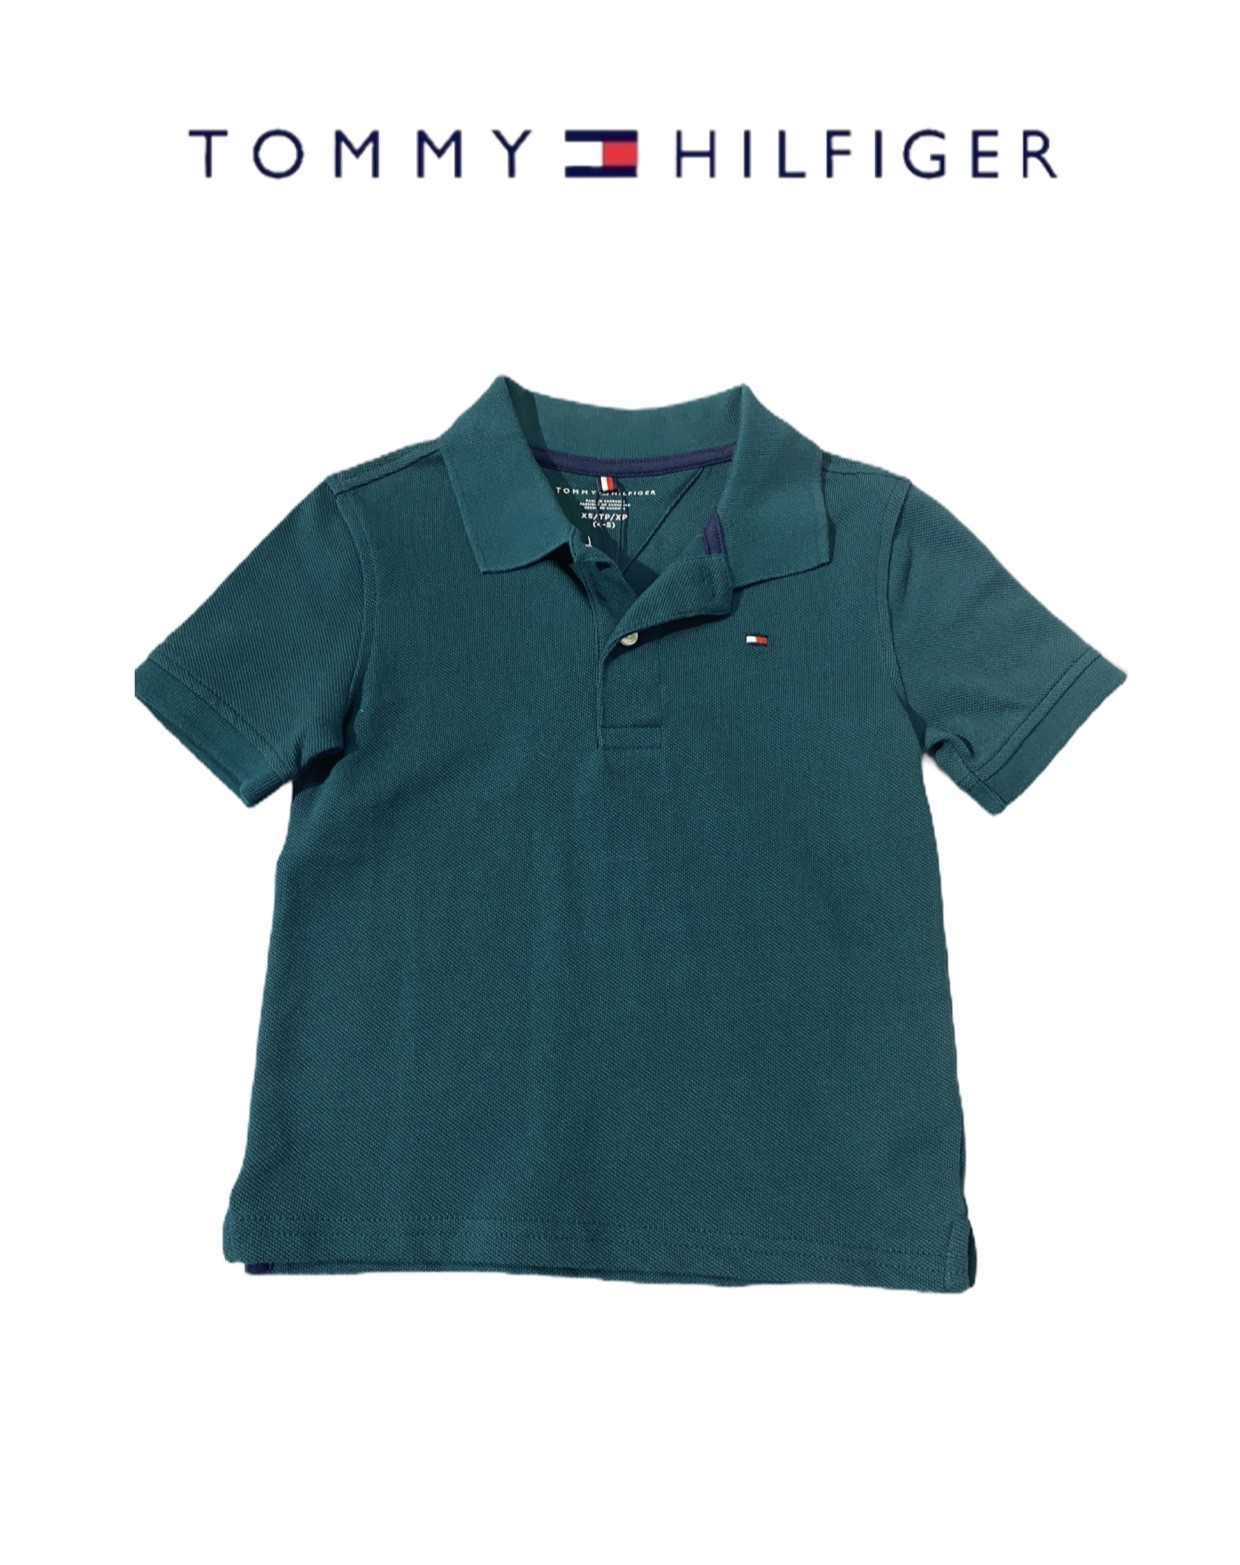 POLO TOMMY HILFIGER® VERDE